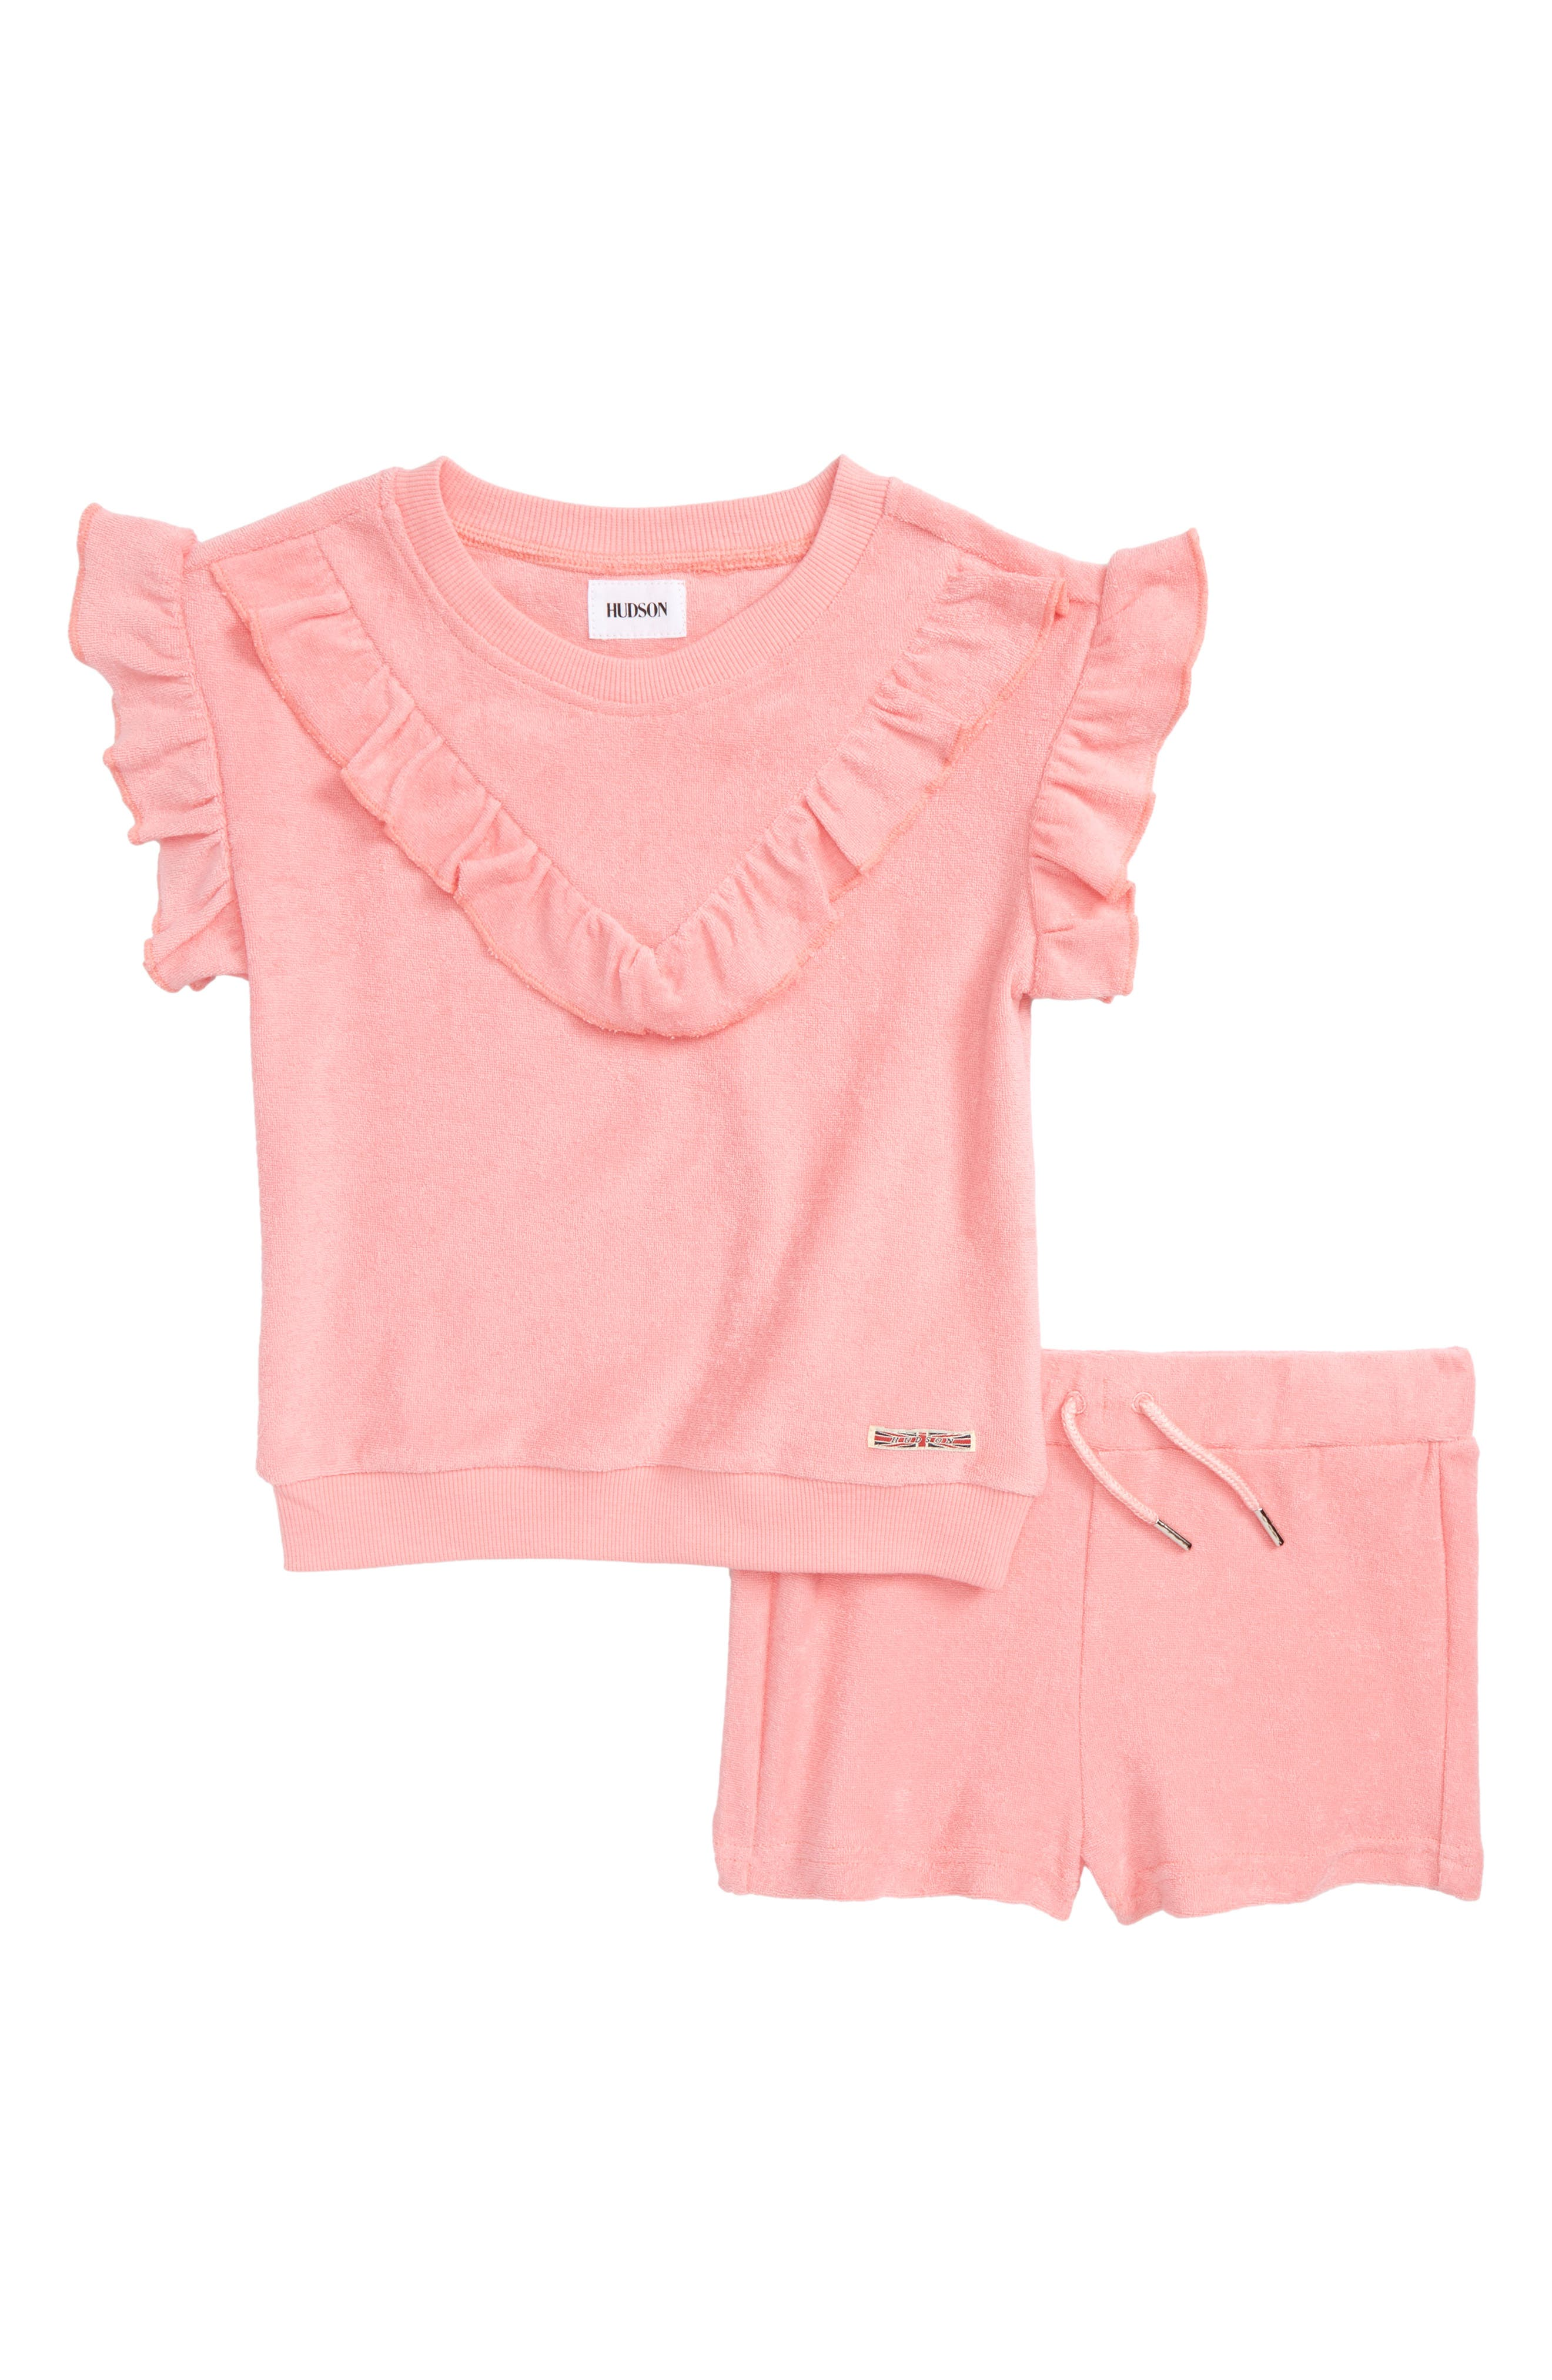 Hudson Kids French Terry Ruffle Top & Shorts Set (Toddler Girls)